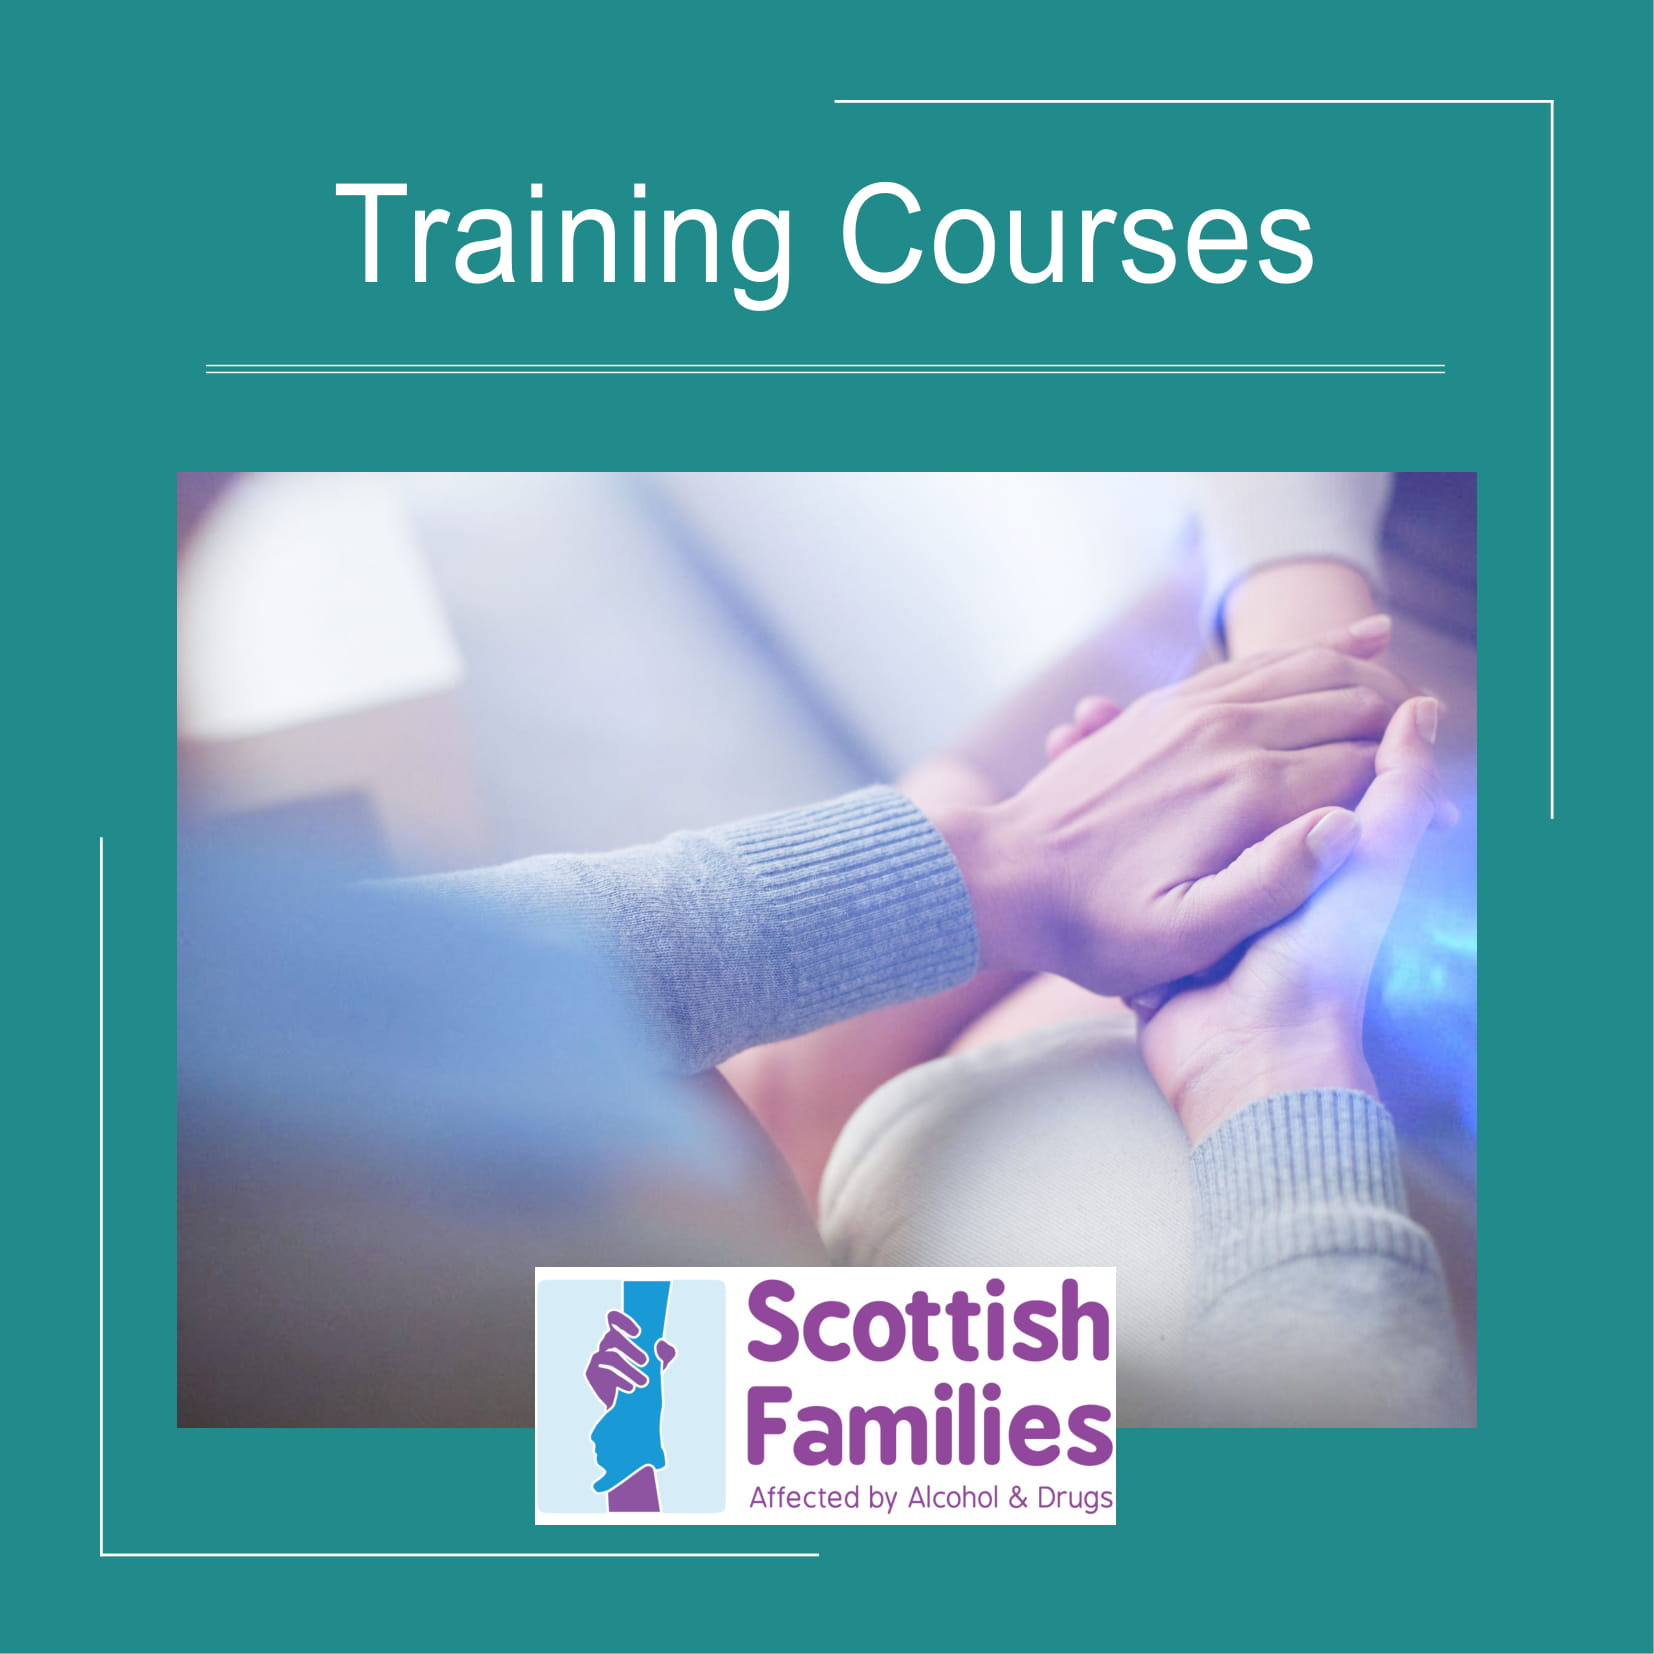 Scottish Families Training Courses